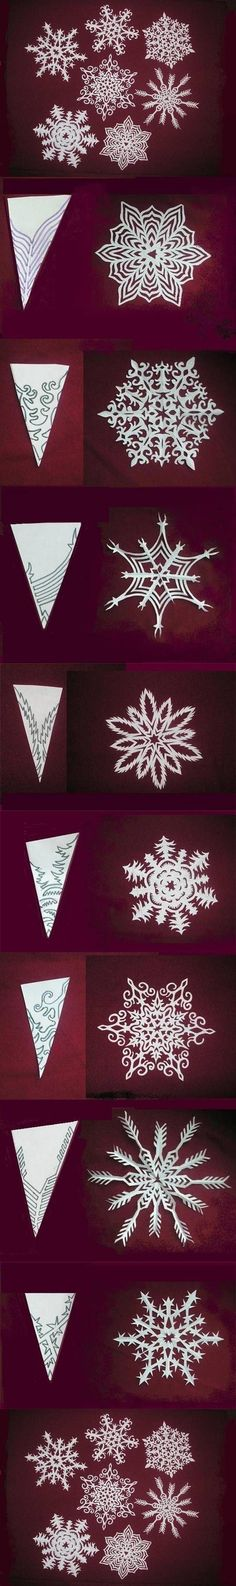 DIY Snowflakes Paper Pattern Tutorial DIY